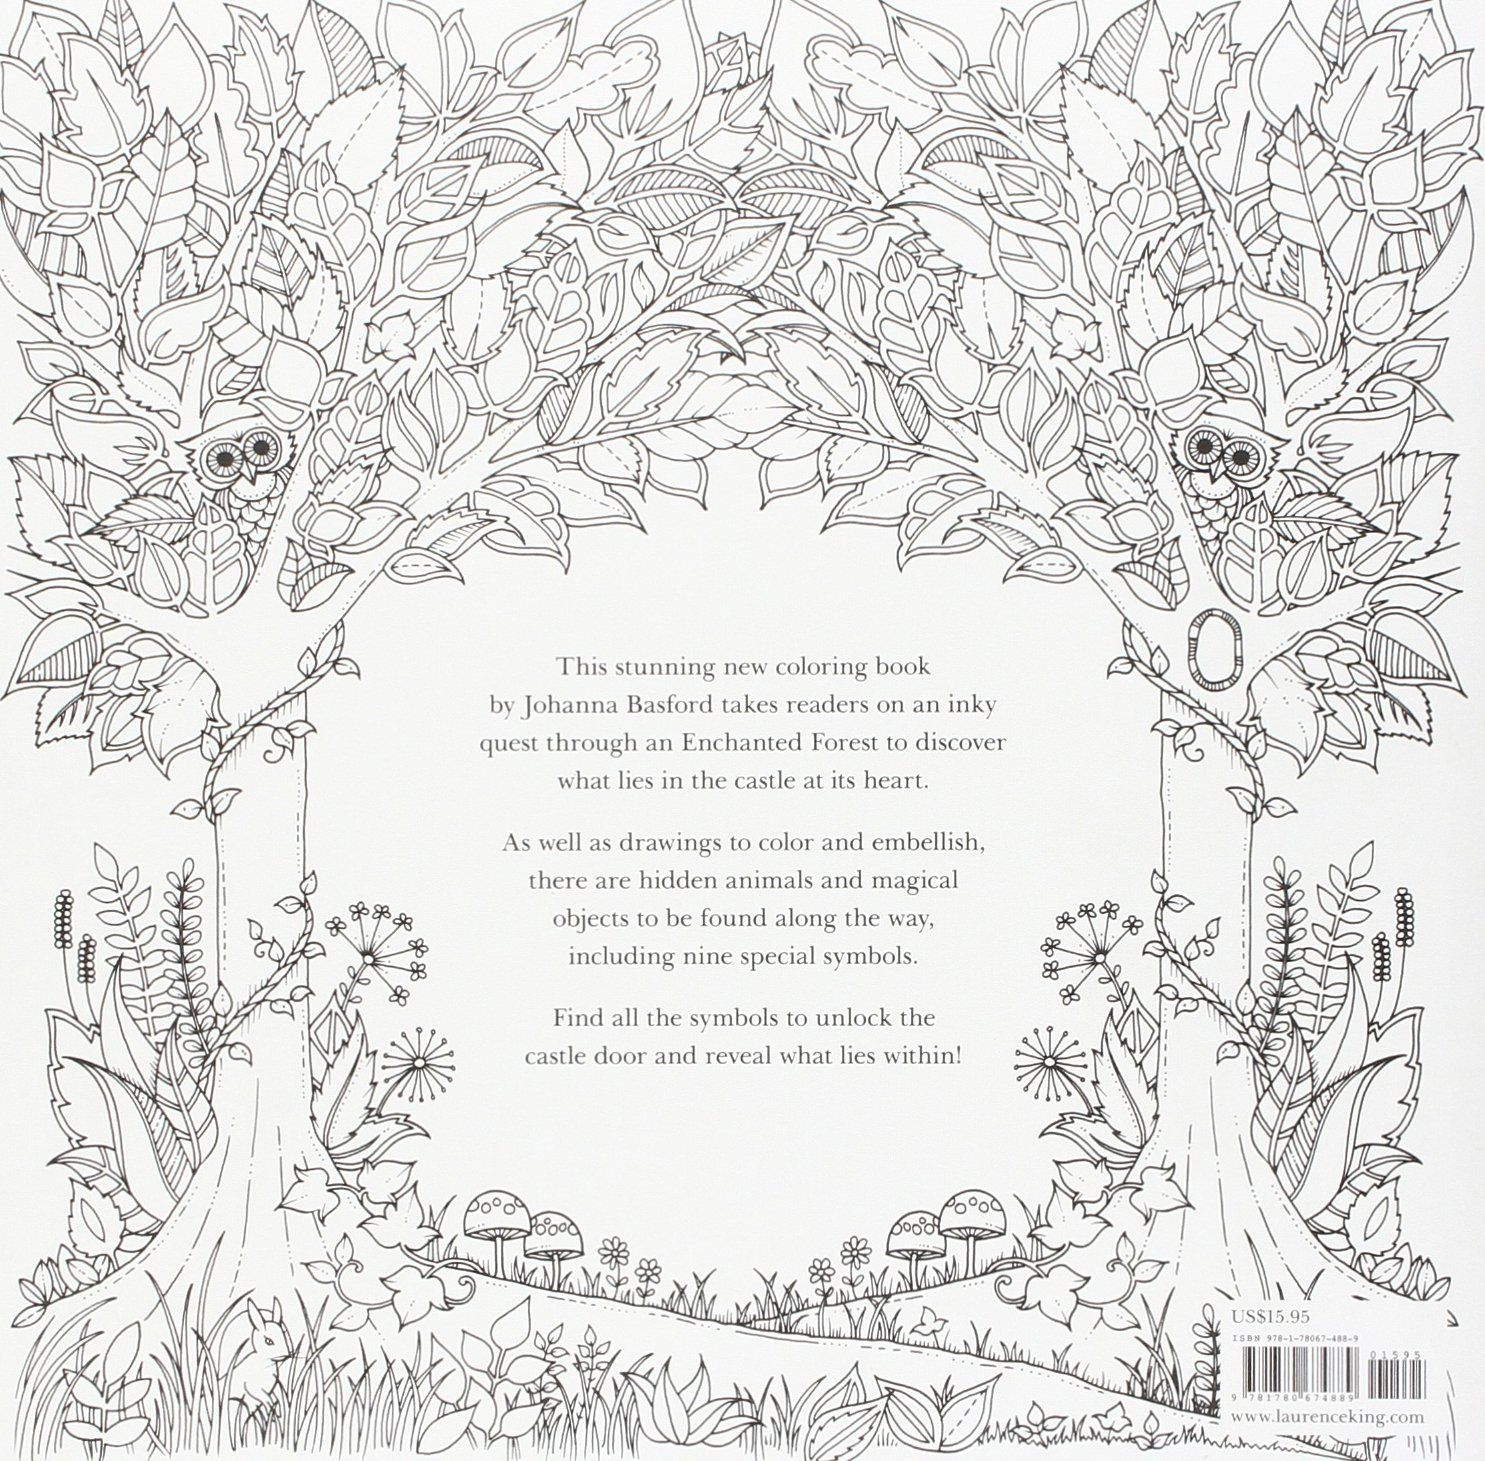 58 Enchanted Forest Coloring Book On Amazon